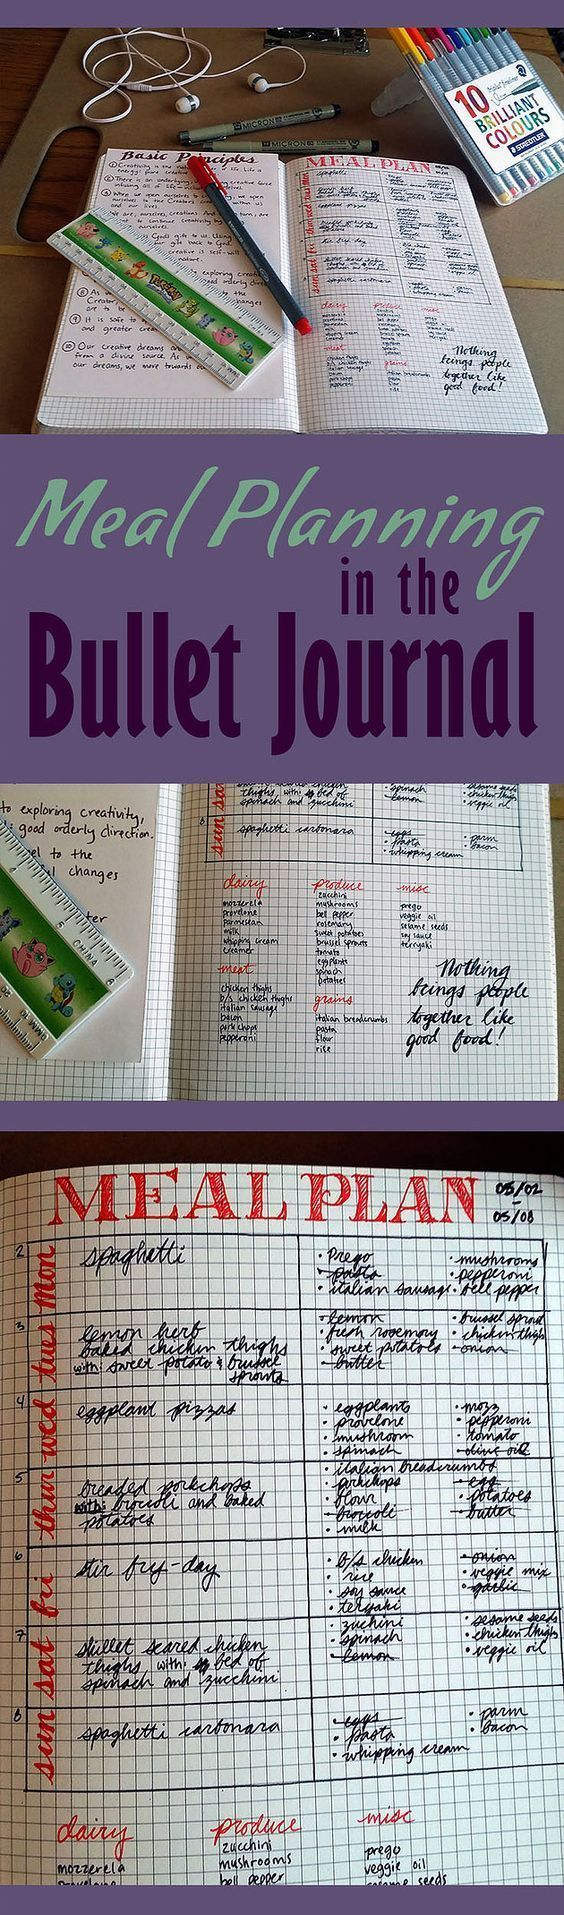 Meal planning is super easy in the bullet journal! I can't wait to organize my weekly meals with my bullet journal.